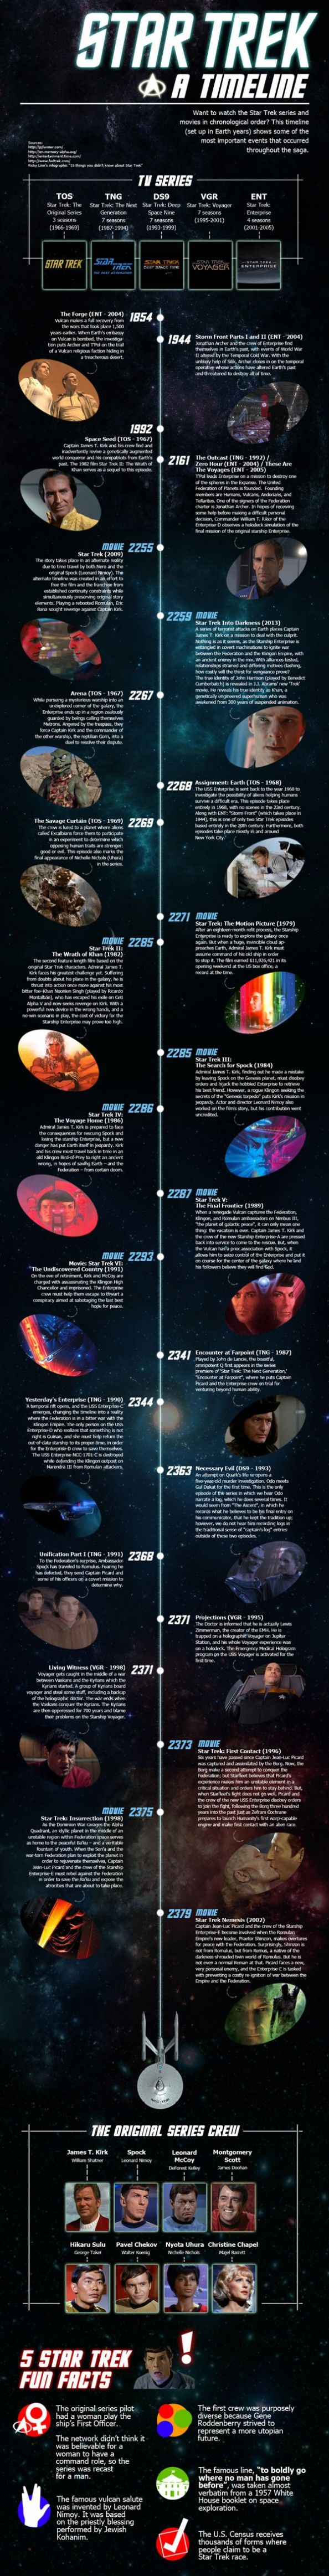 Star Trek Episodes Timeline Infographic  Well, I'd reorganize by event instead of episode (1992 was when Khan was frozen, not when the episode took place, sheesh) but as long as we all agree to leave Generations off the chart, I'm happy.